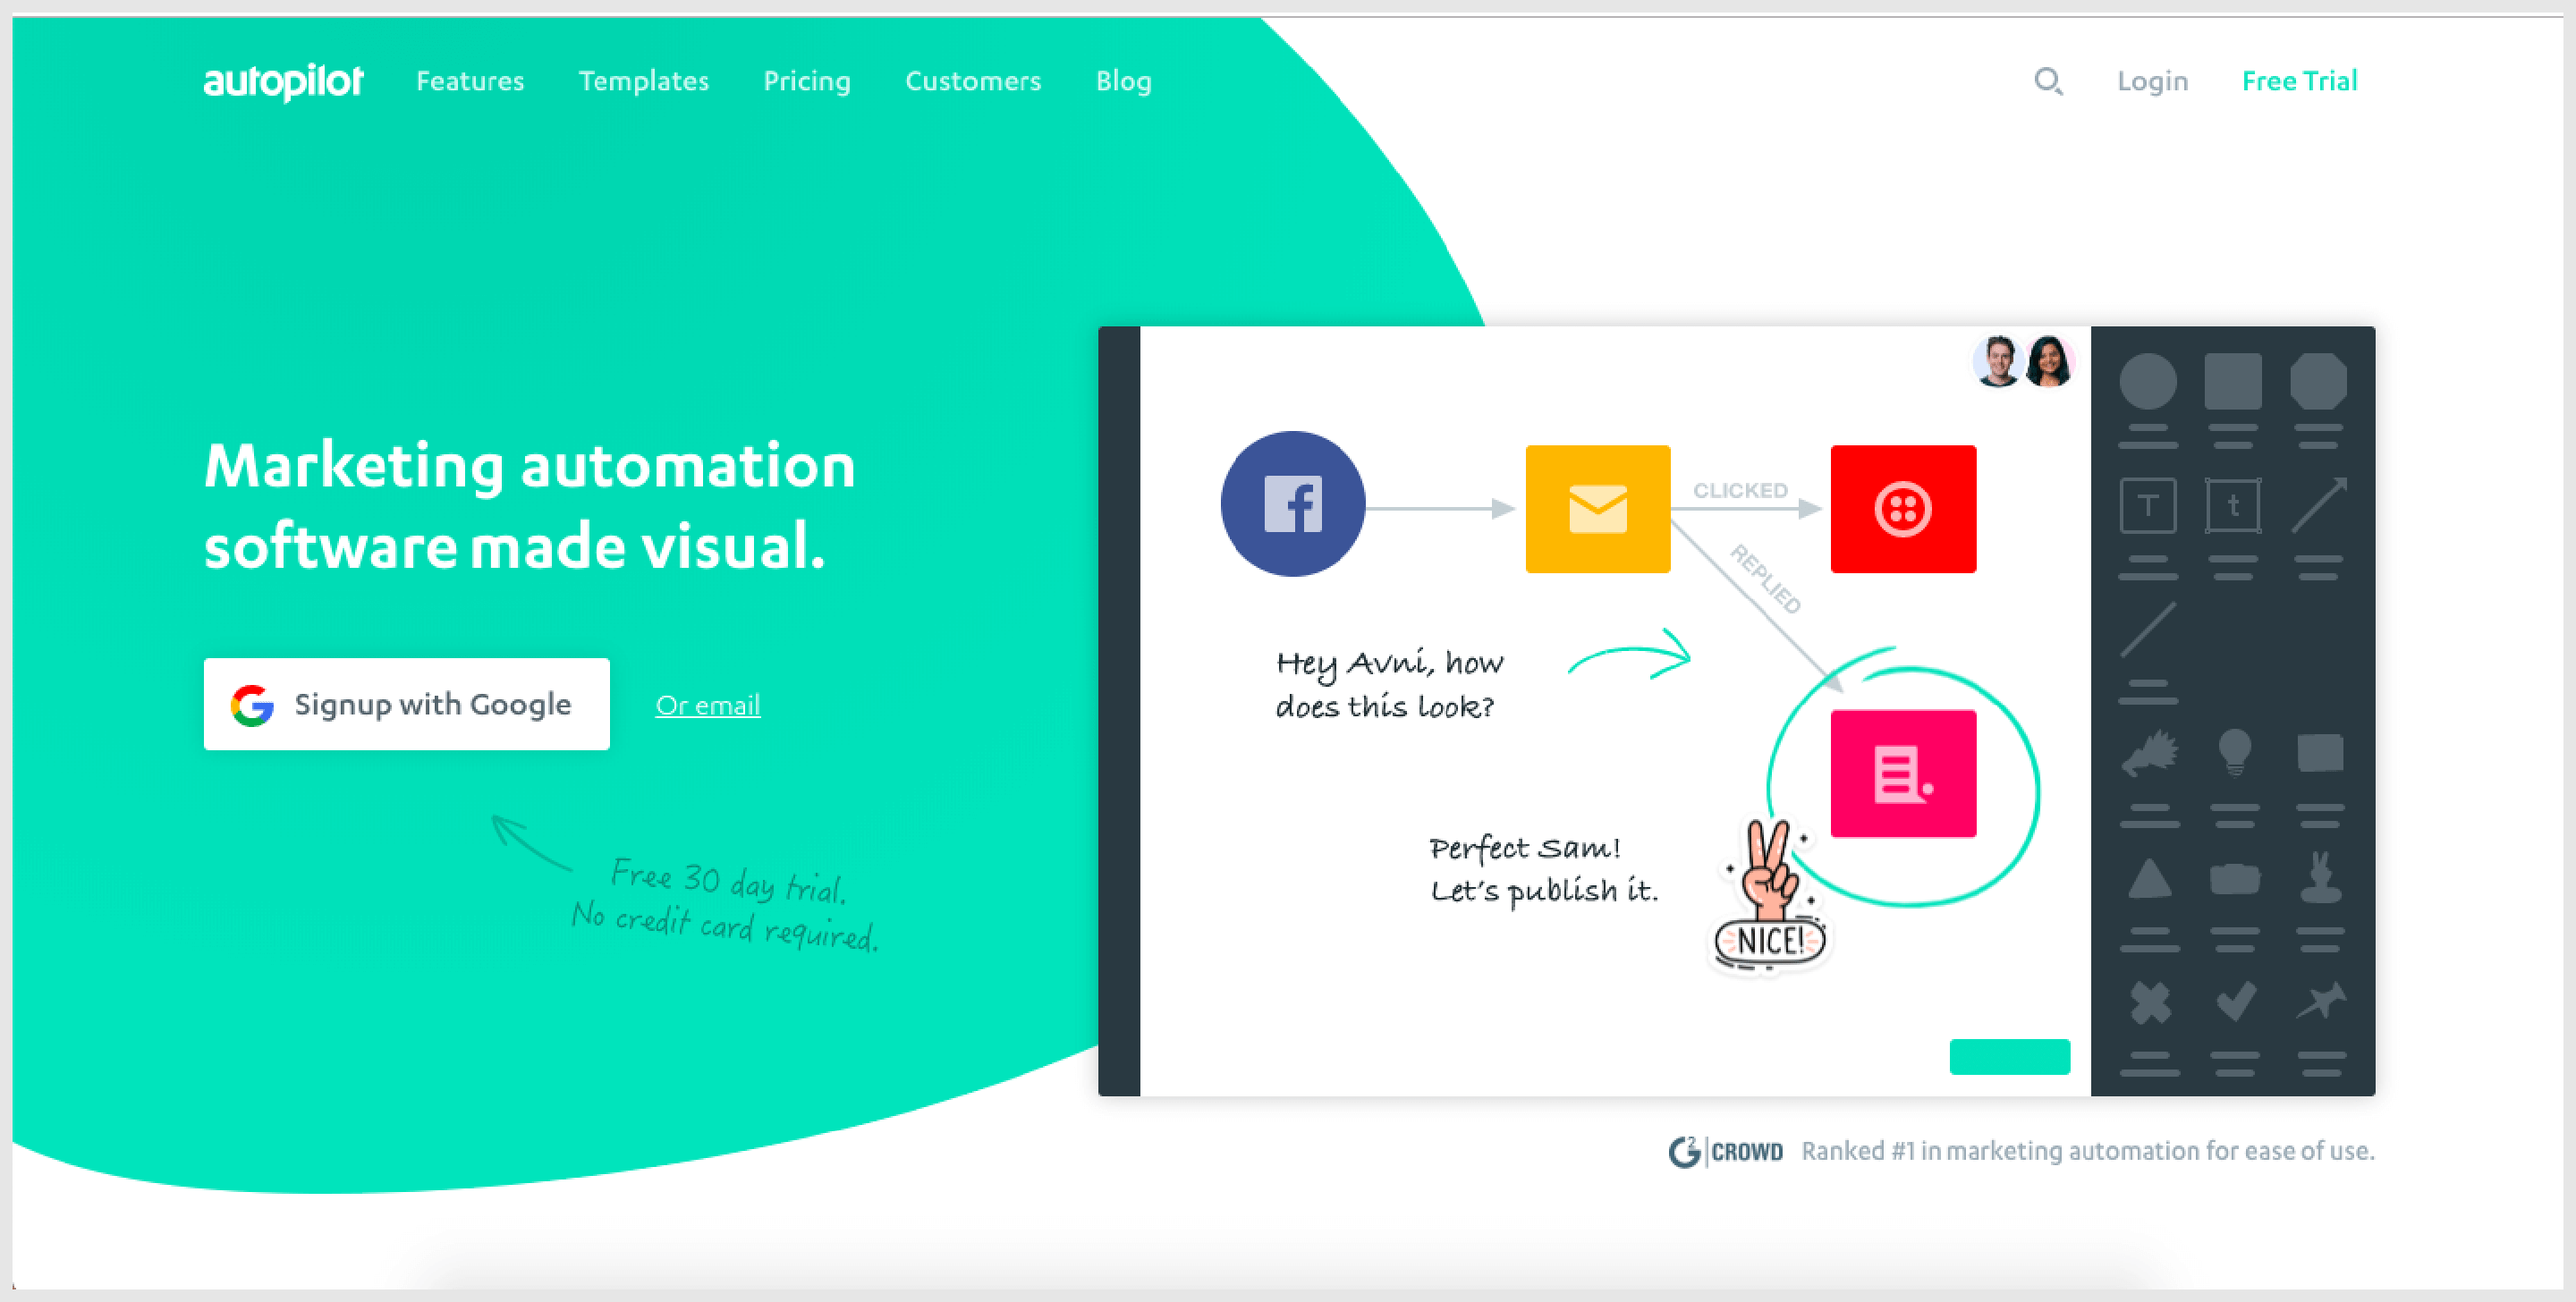 Autopilot is a platform that provides marketing automation services to facilitate capture and conversion of leads, customer relationship andengagement.